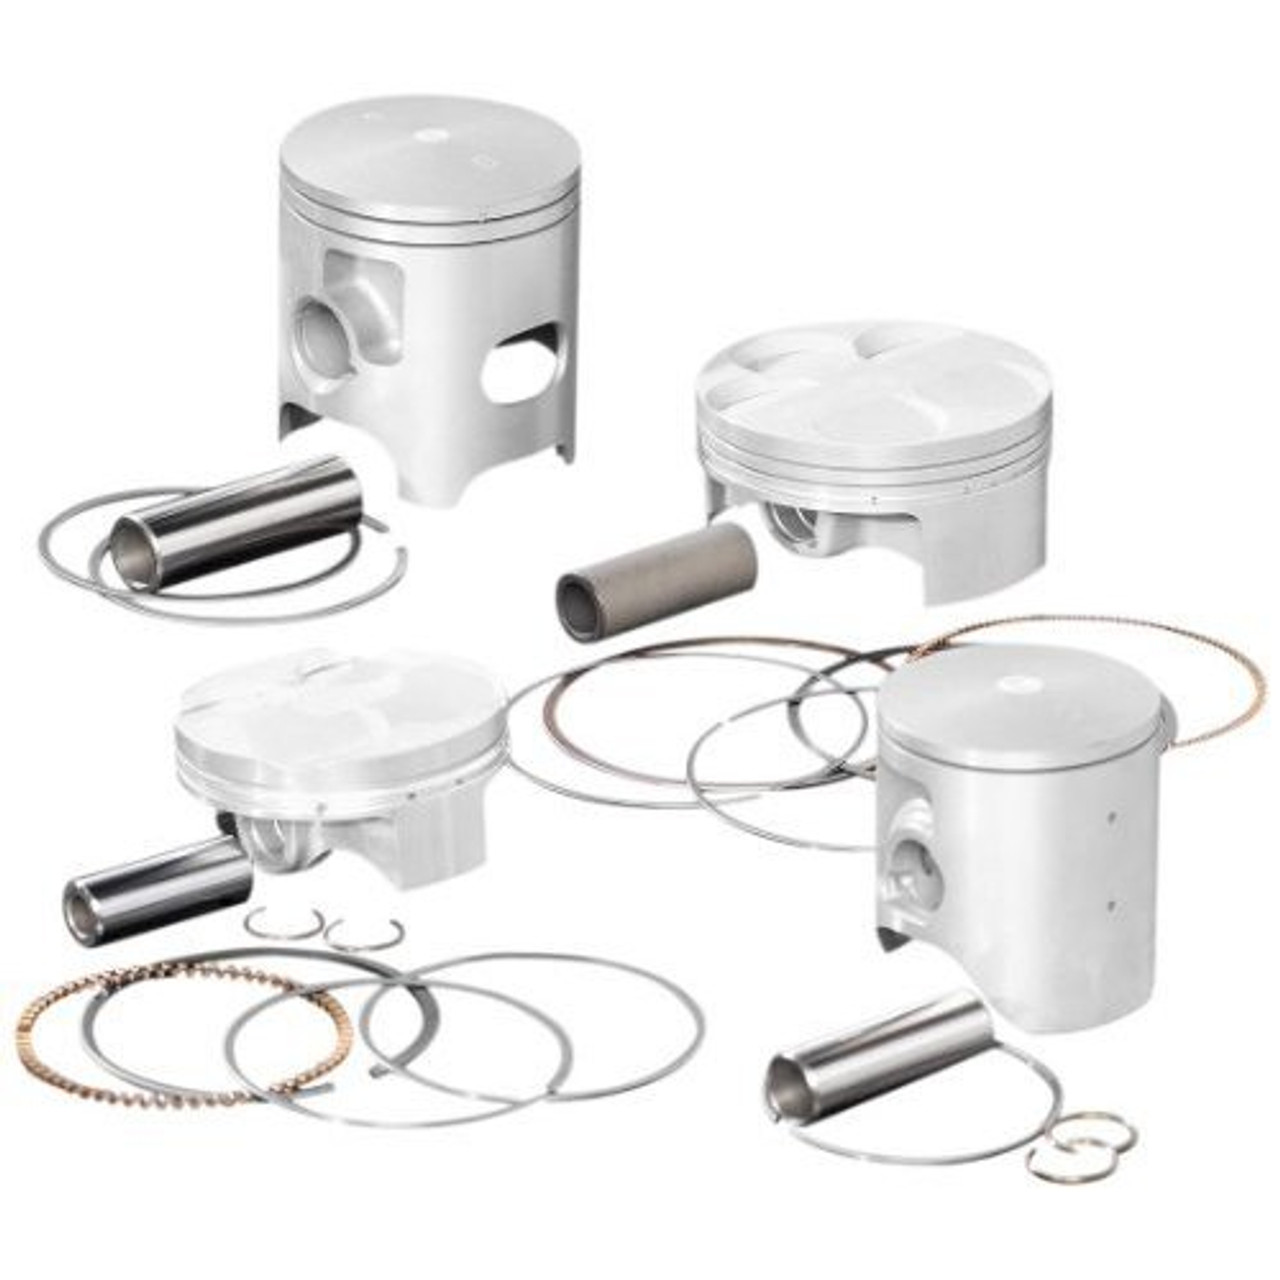 Wiseco 4666M05400 54.00mm 9.4:1 Compression 101cc Motorcycle Piston Kit